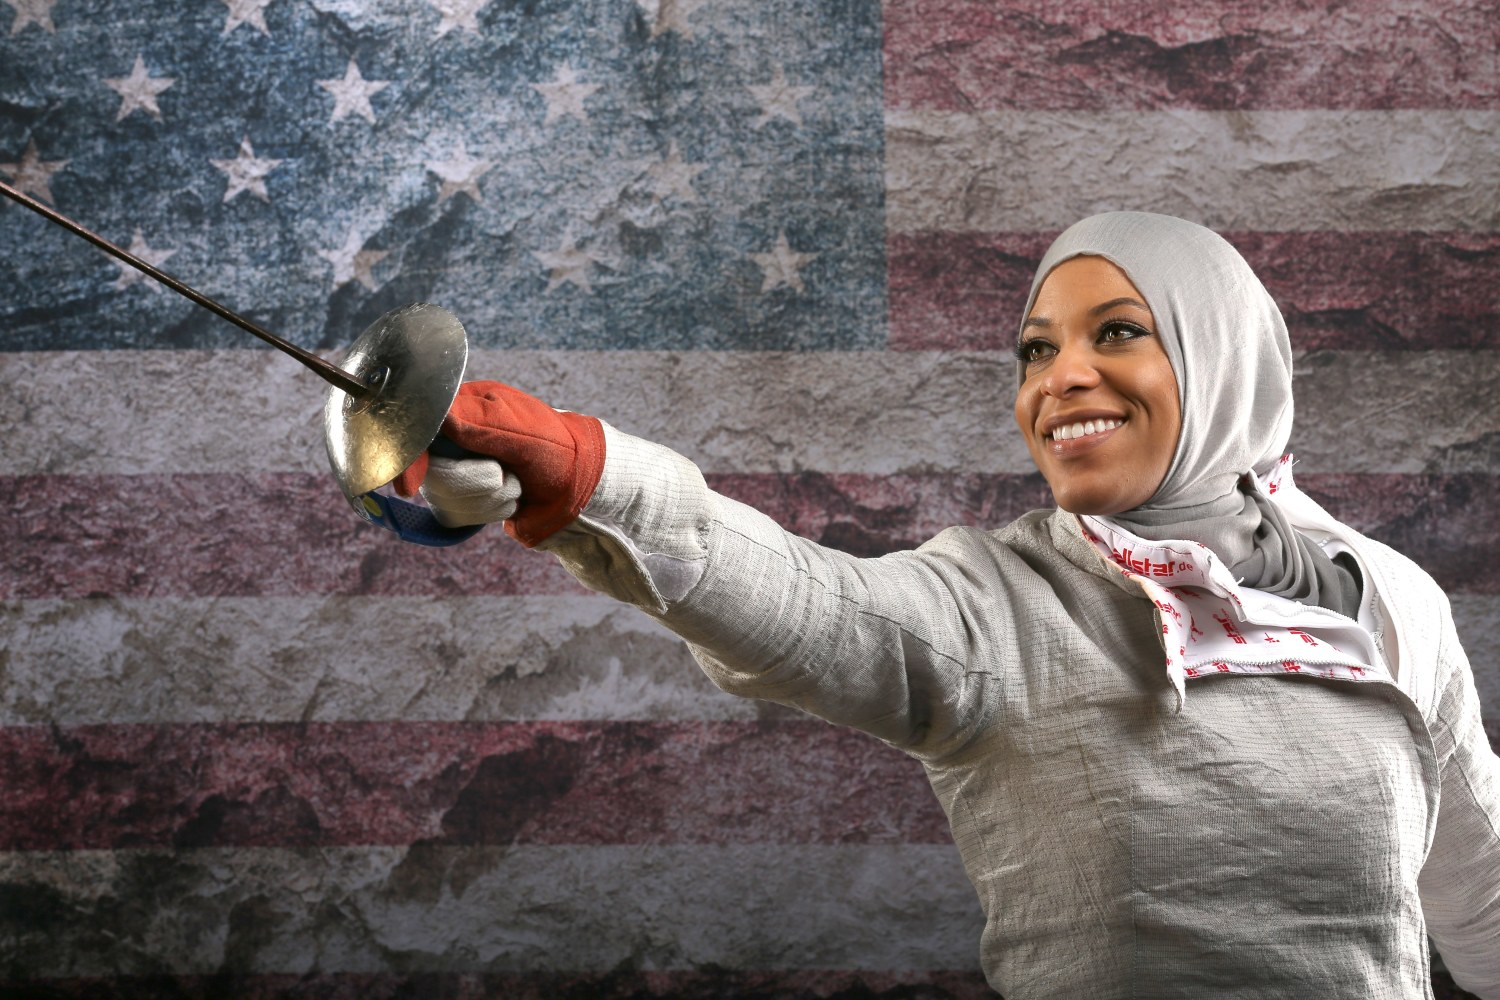 How Muslim Girls Fence Helps Girls Put Stereotypes To The